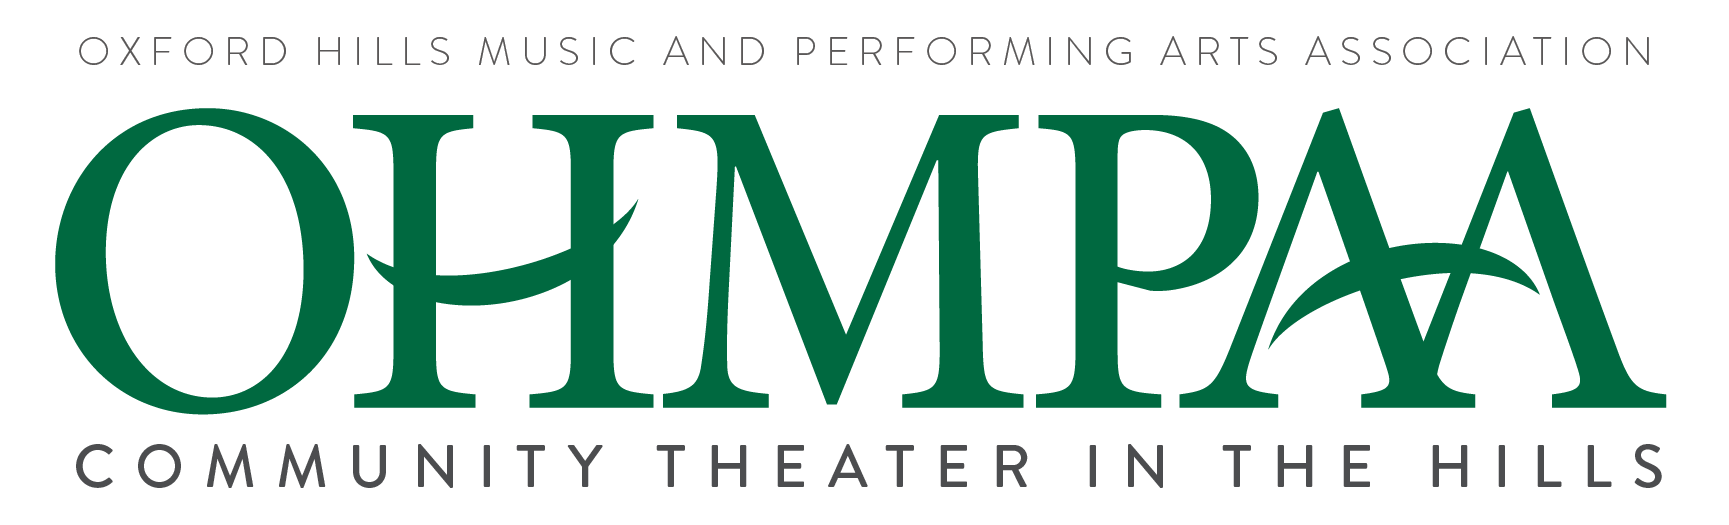 OHMPAA - Community Theater in the Hills